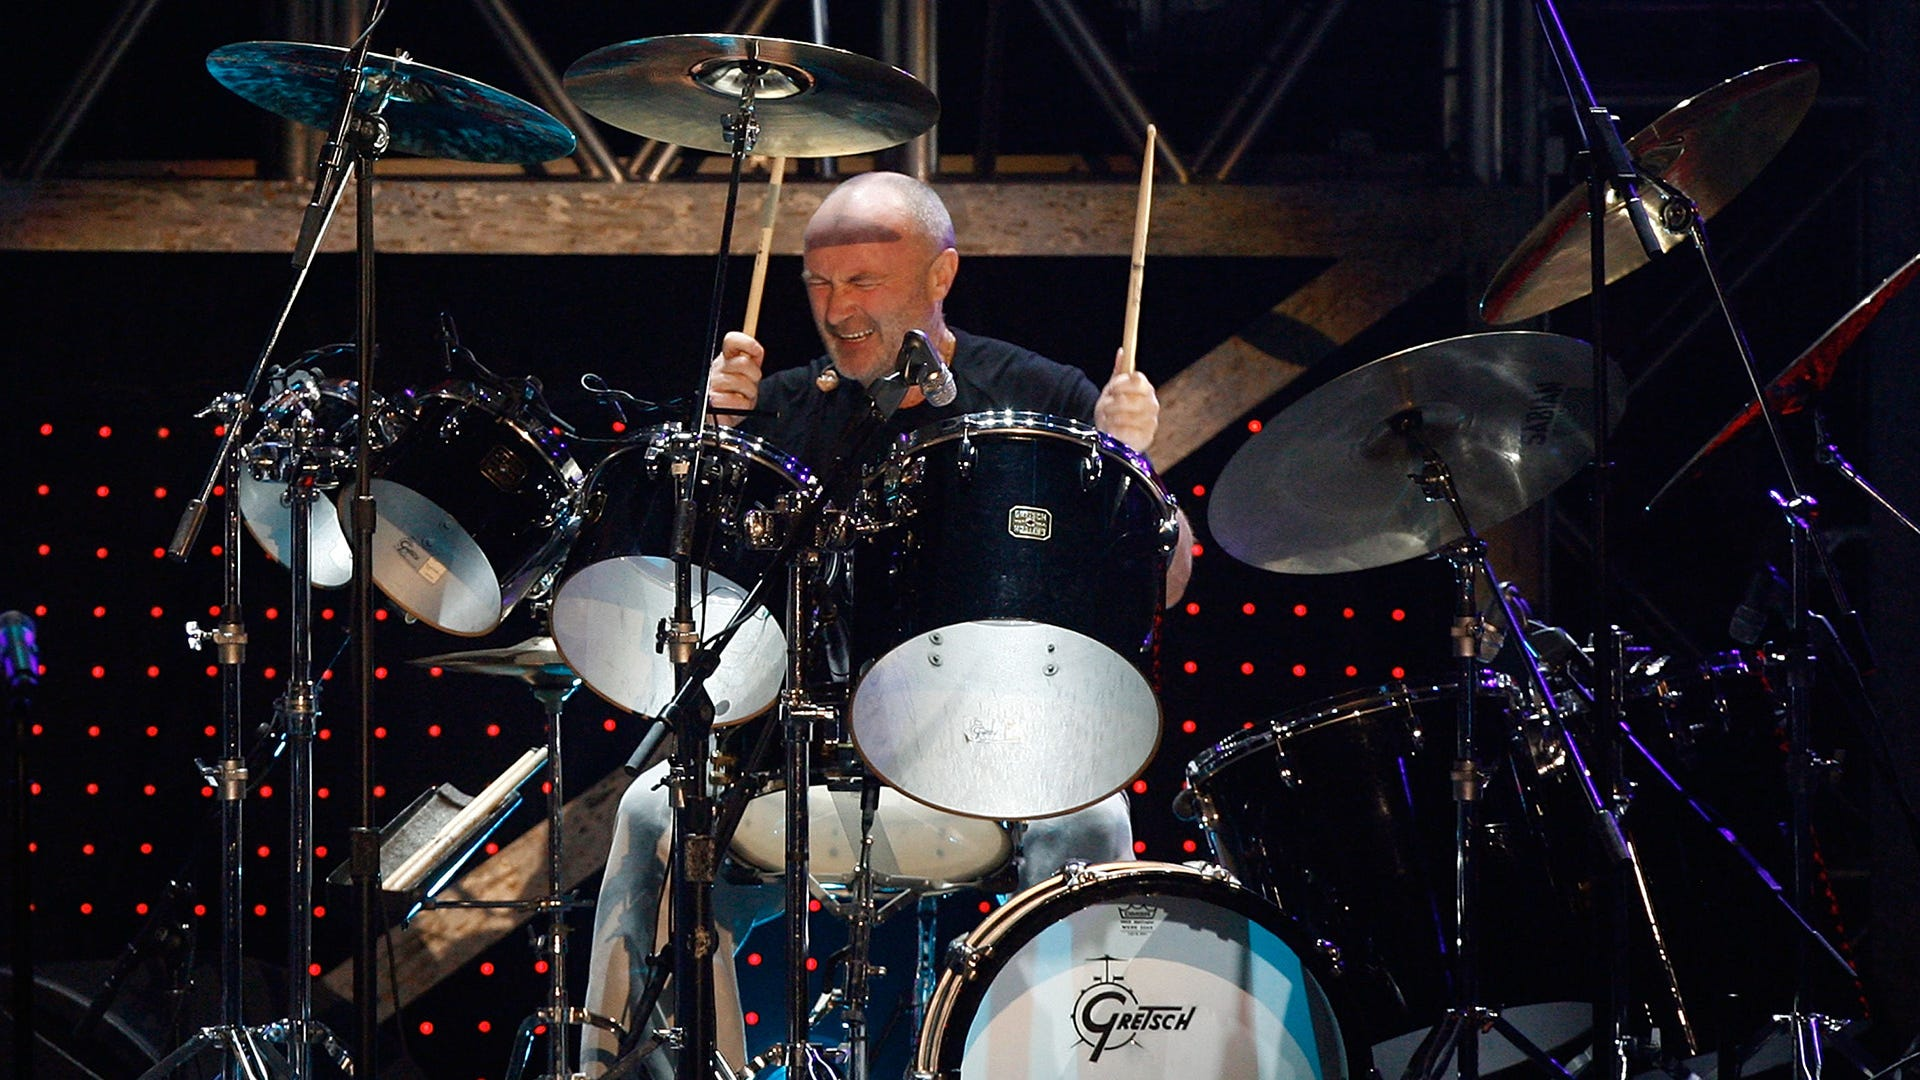 Phil Collins admits 'I can barely hold a stick' in health update